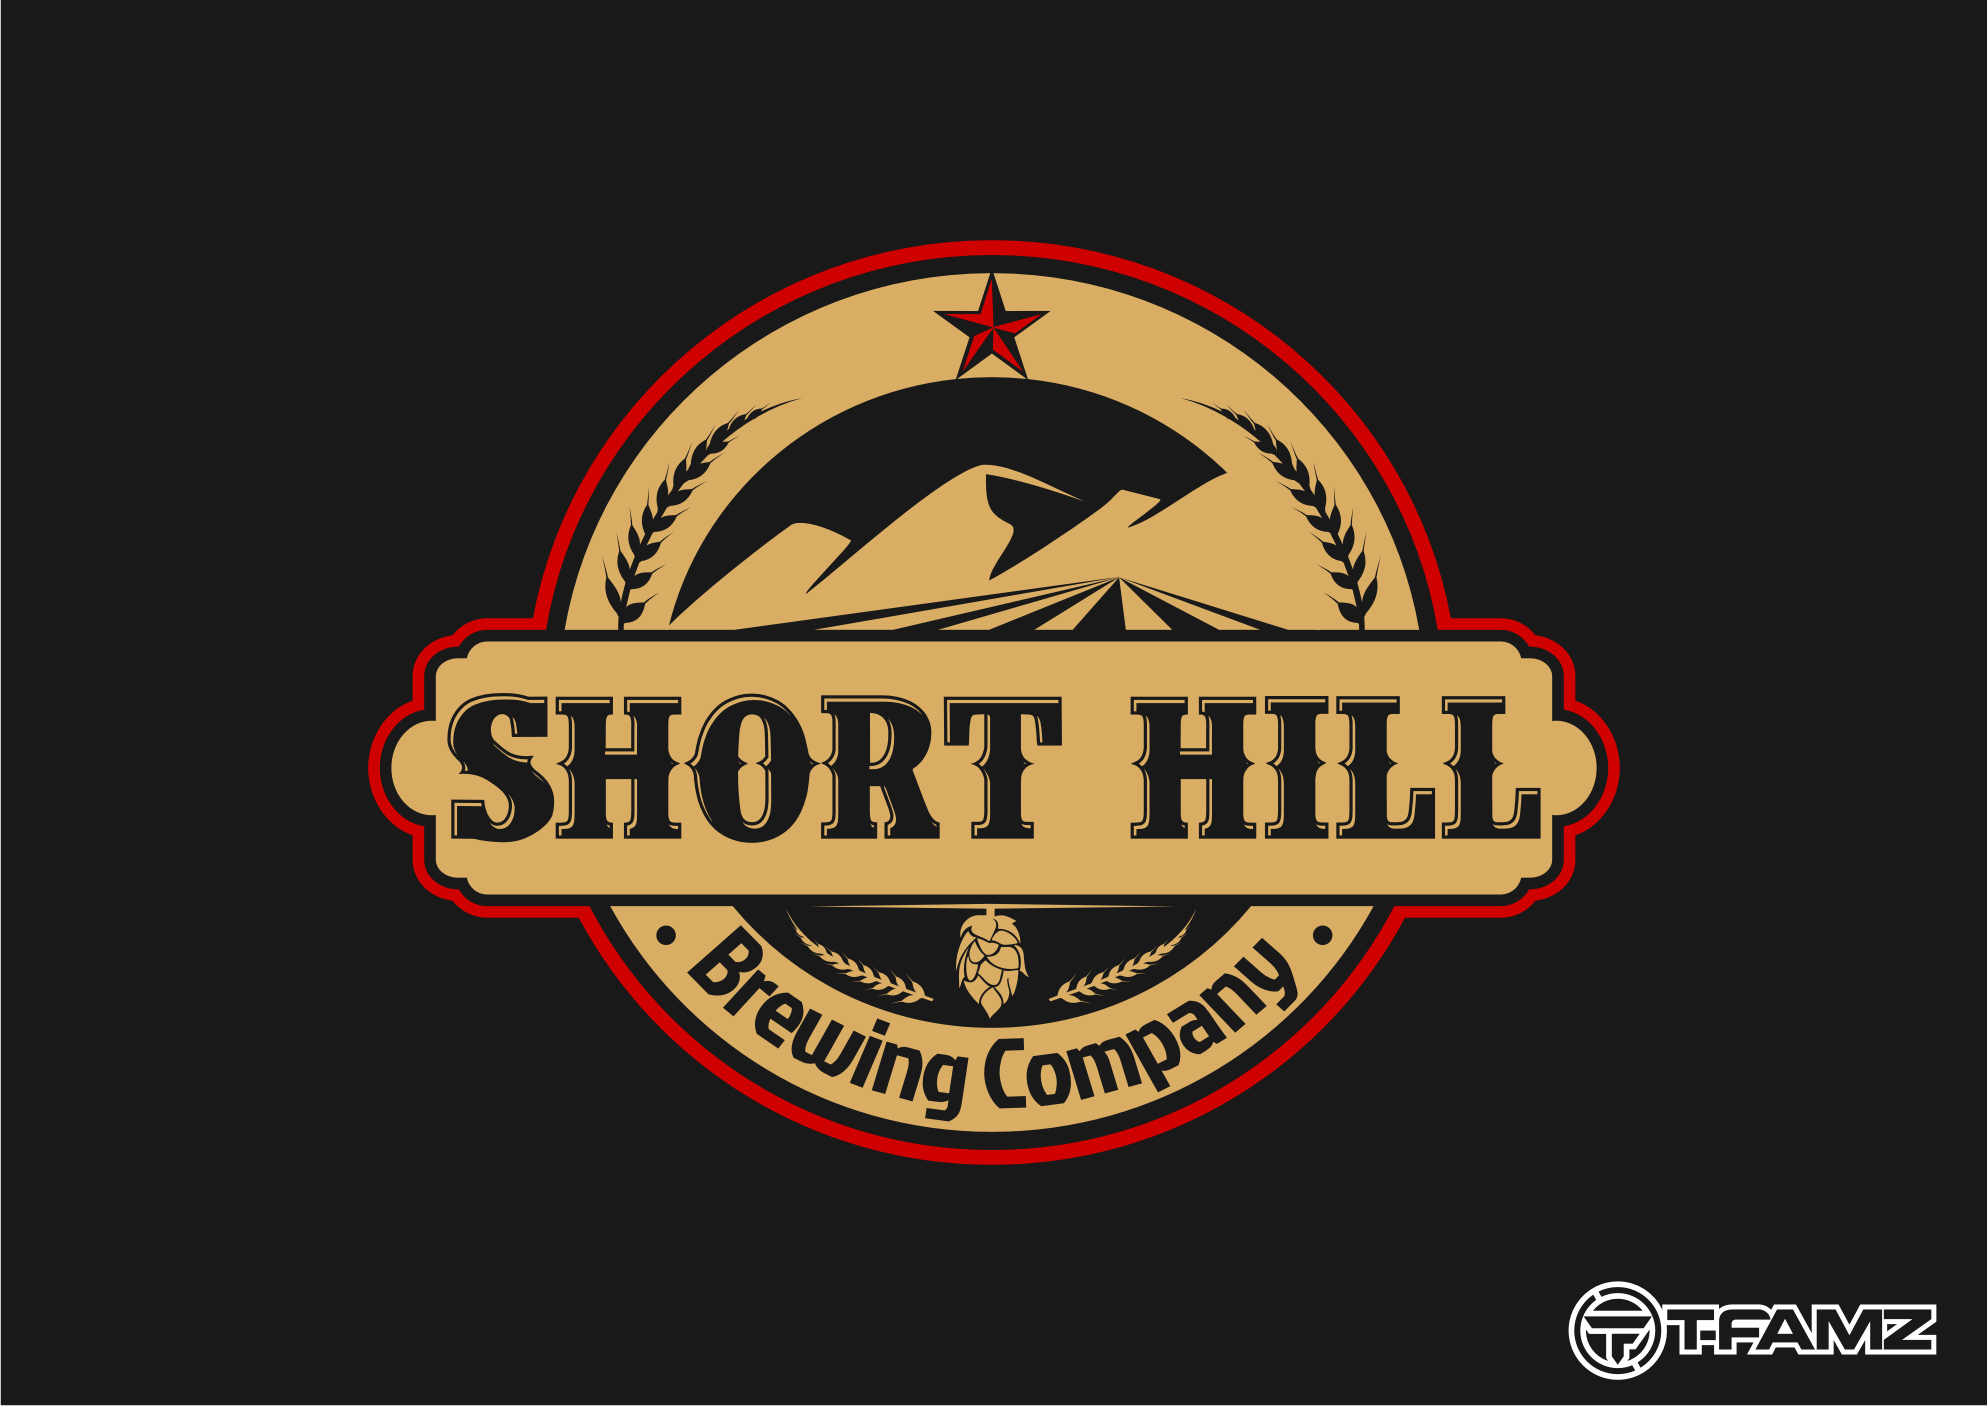 Logo Design by Tille Famz - Entry No. 32 in the Logo Design Contest Unique Logo Design Wanted for Short Hill Brewing Company.